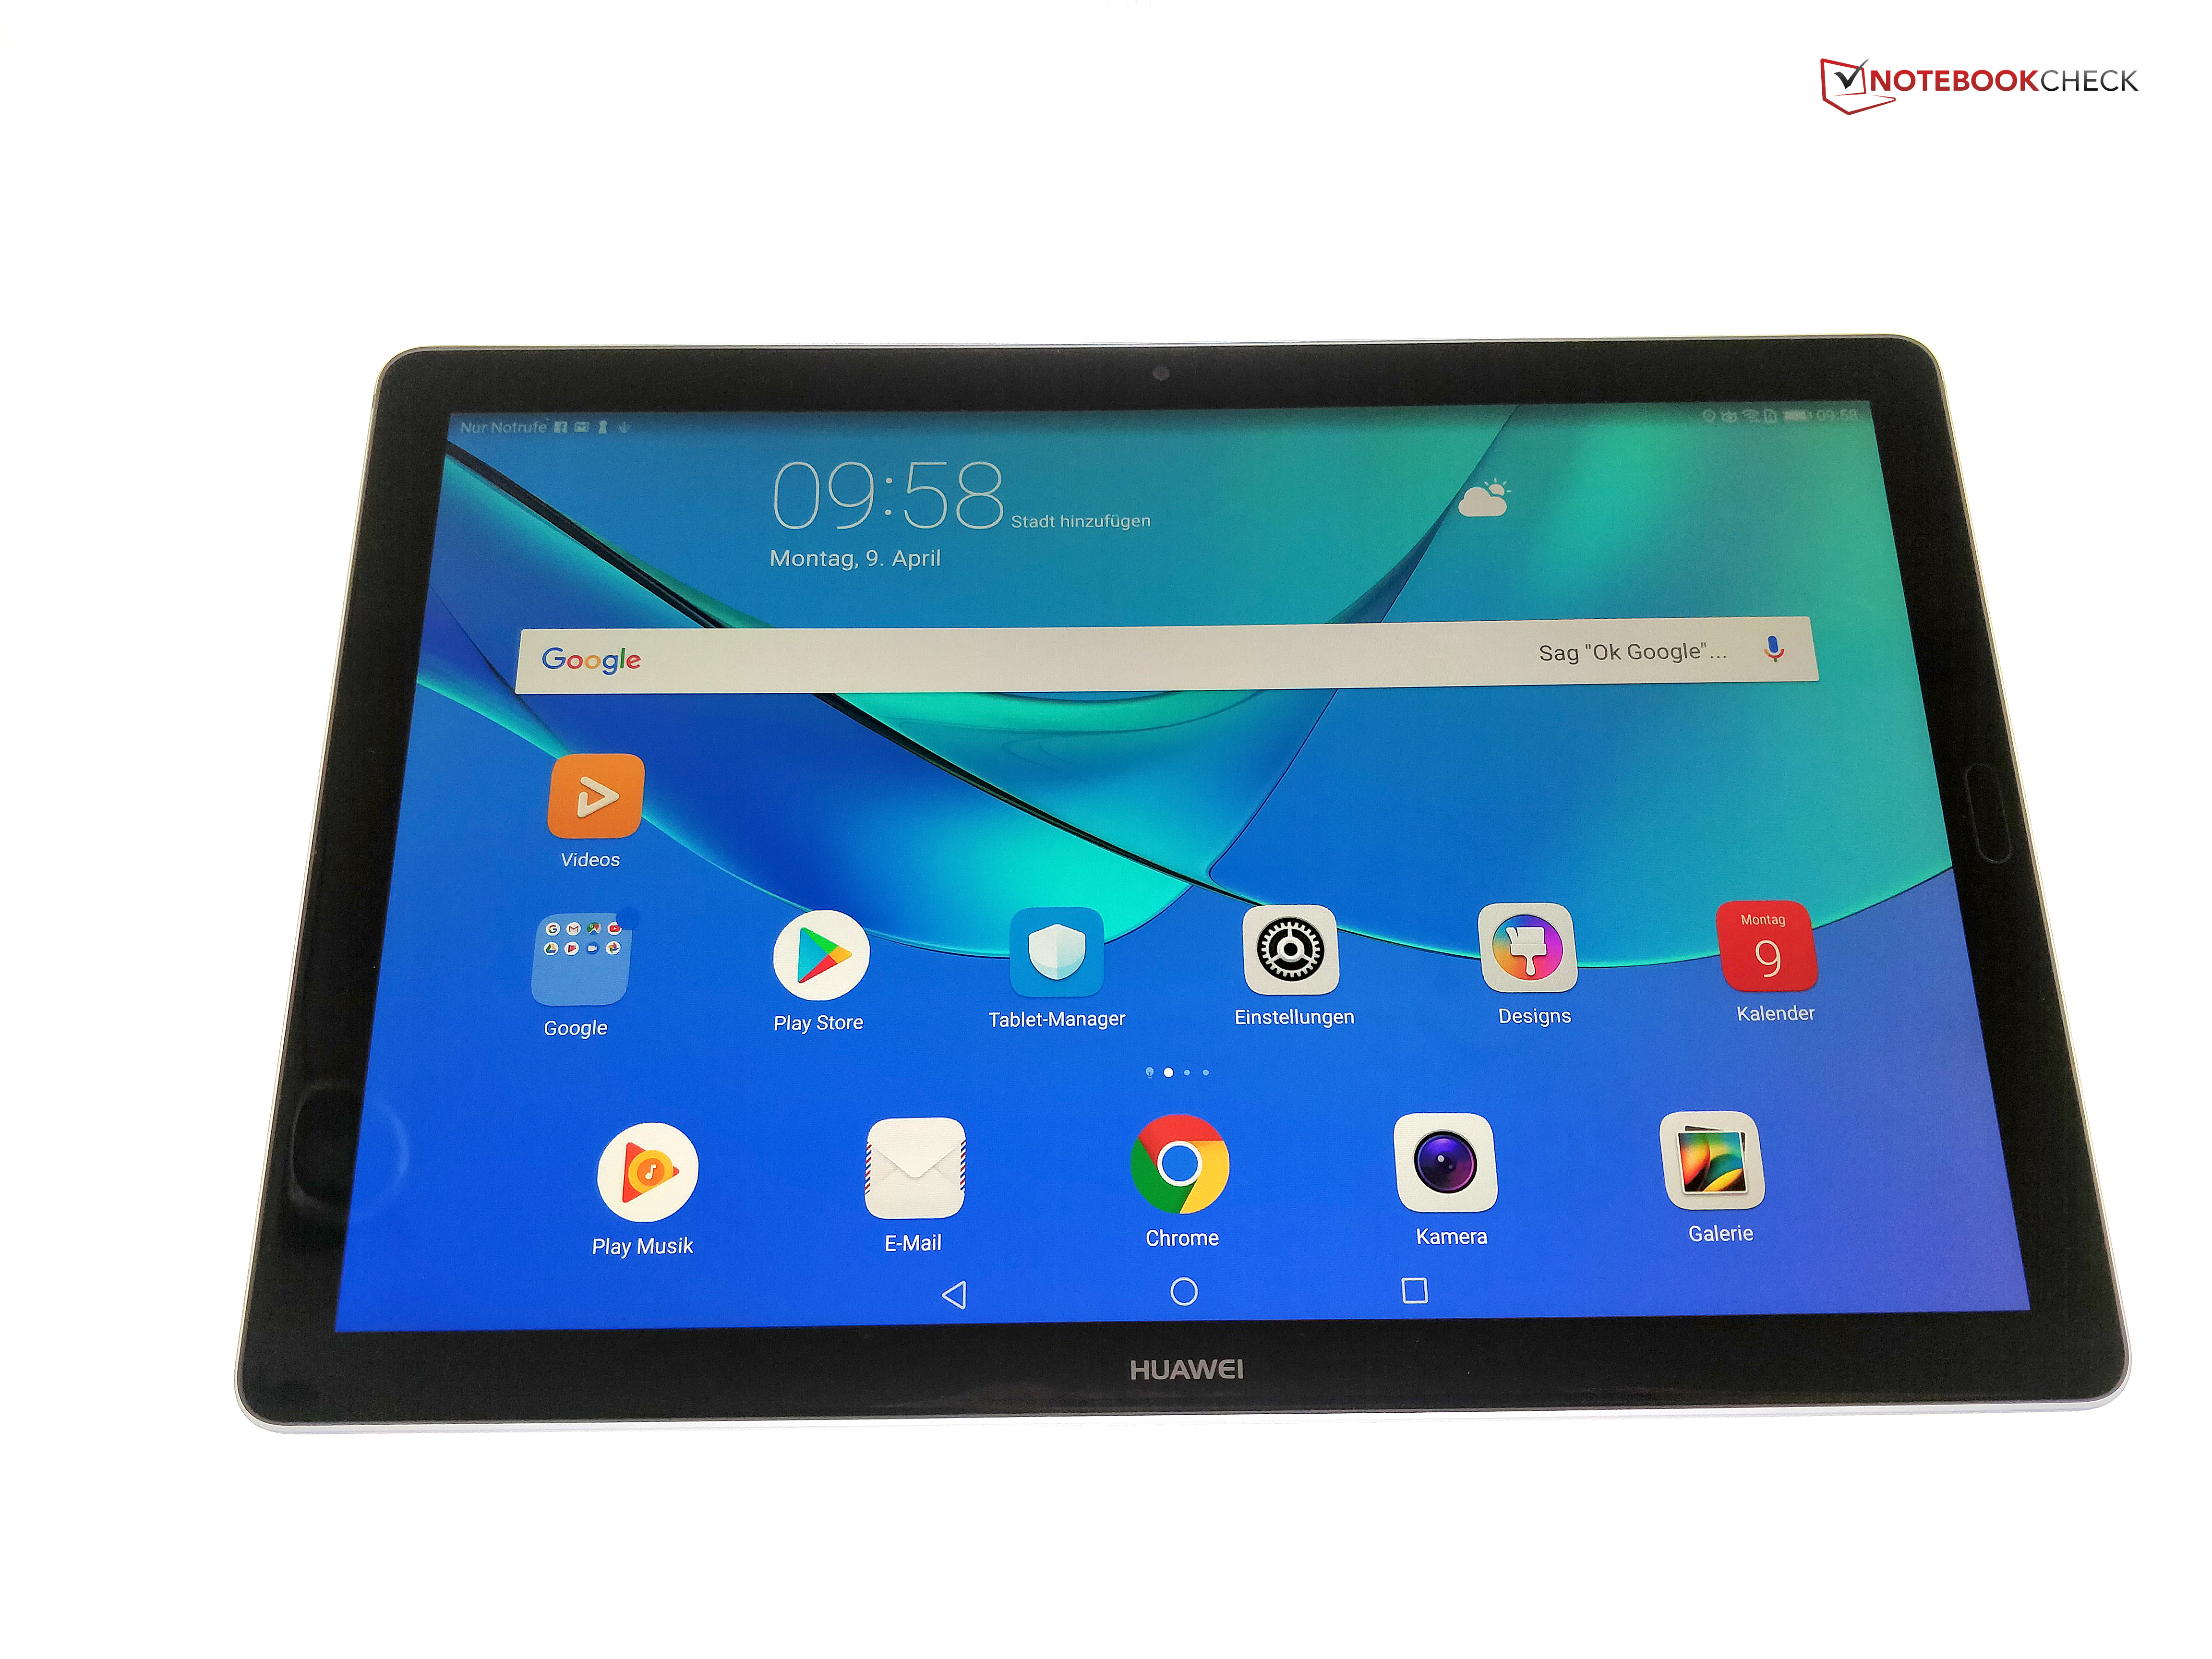 Huawei MediaPad M5 (10 8-inches, LTE) Tablet Review